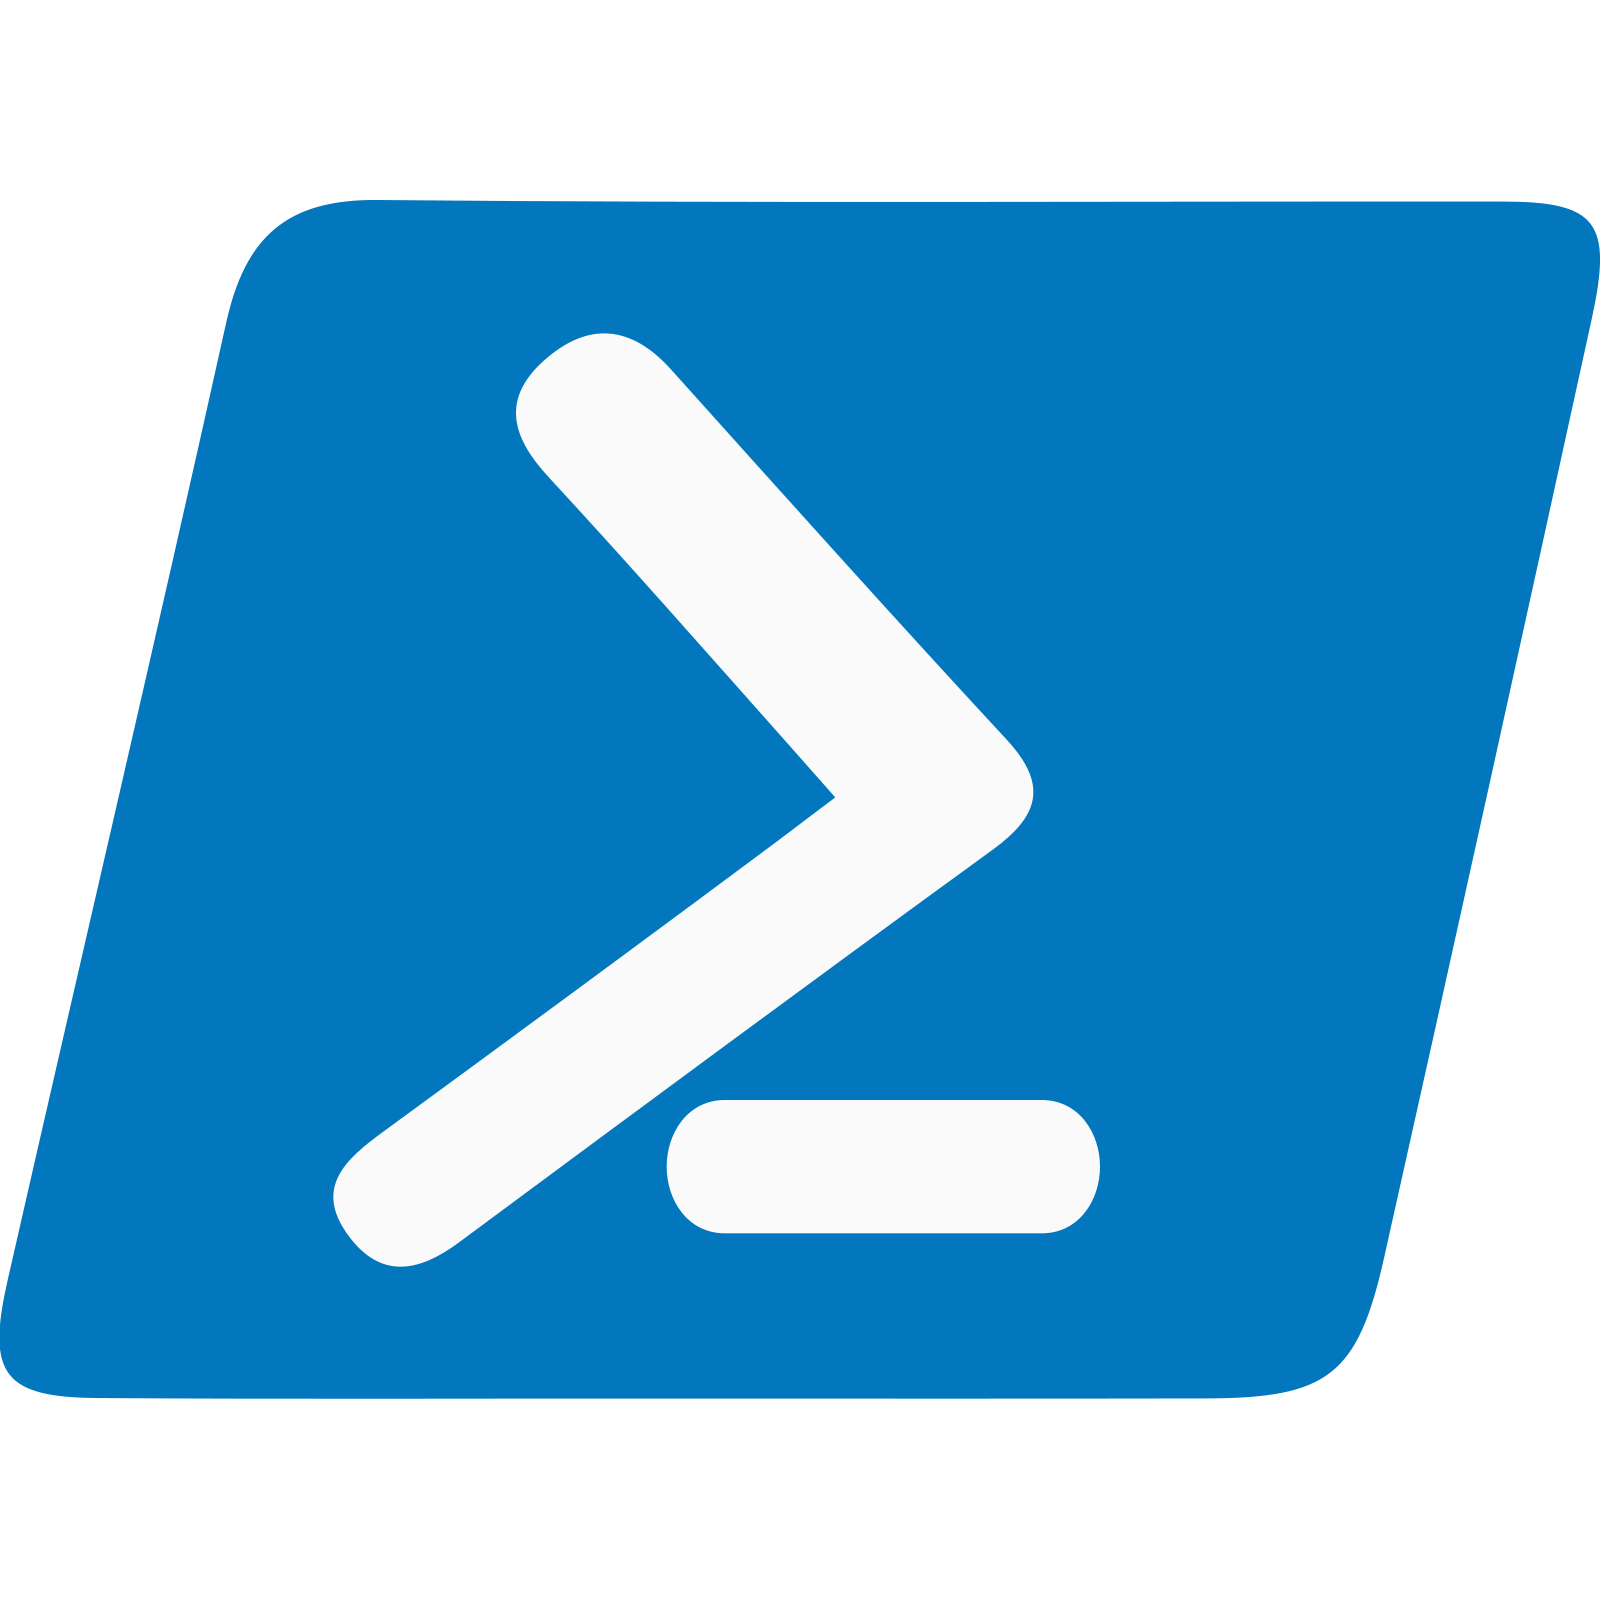 Episode 15 - Interview with the Co-founders of the Chicago PowerShell User Group